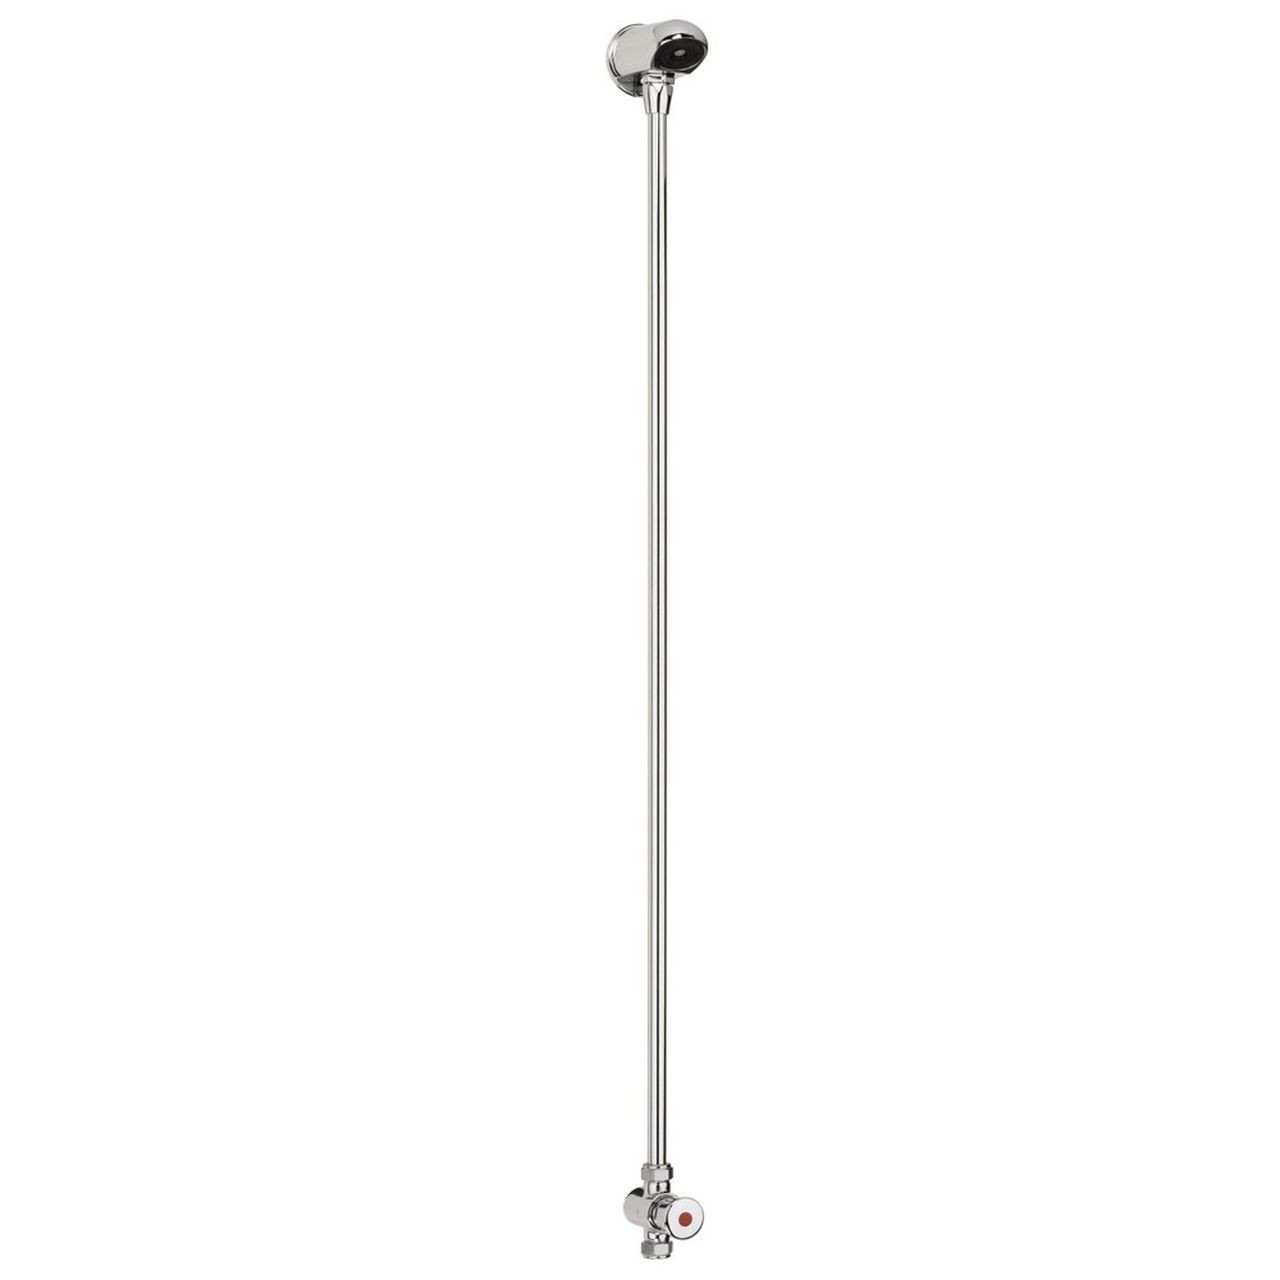 Bristan Exposed Chrome Timed Flow Control Shower with Fixed Head - MEFC-PAK